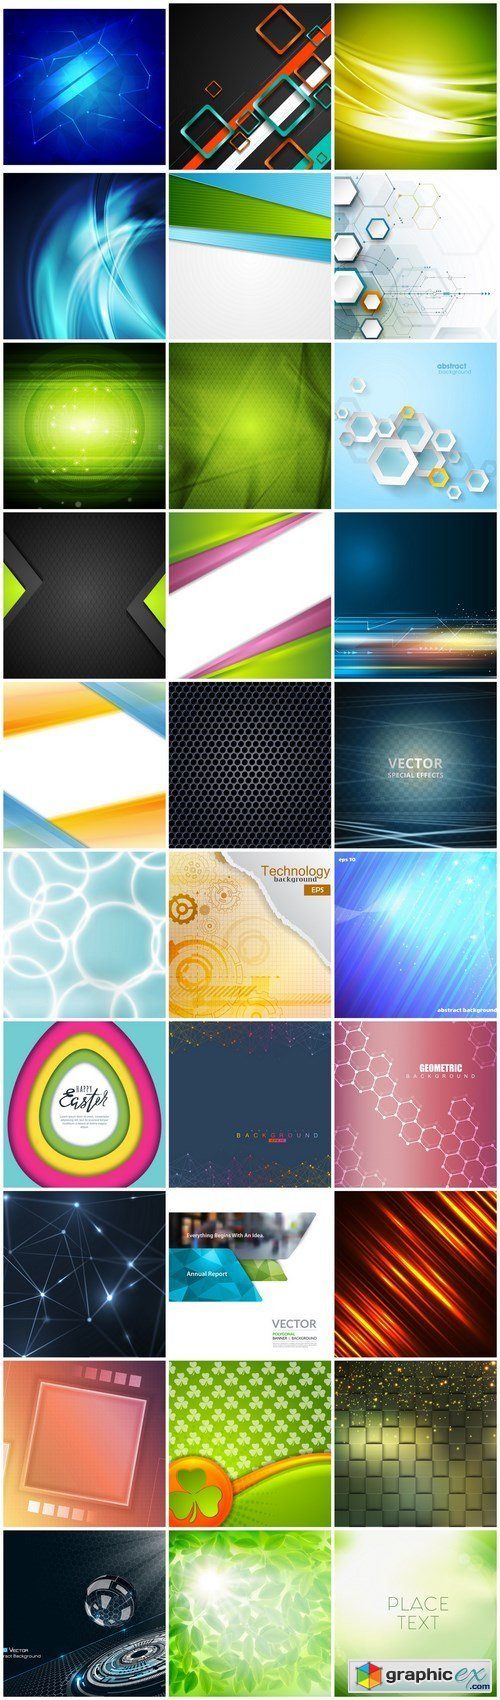 Abstract Background Collection #216 - 30 Vector